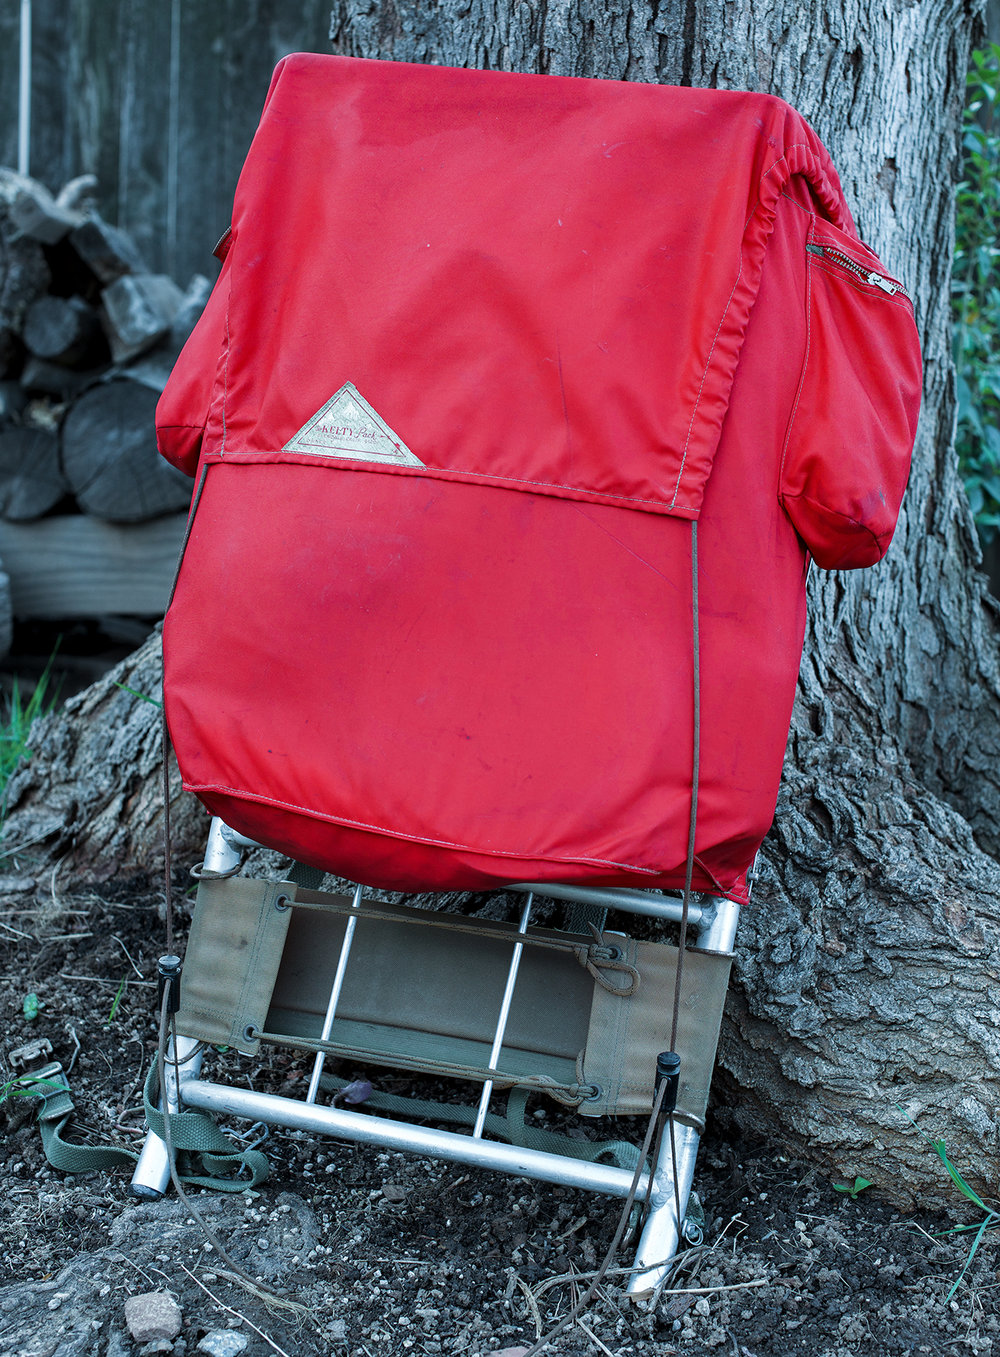 The payload section of the pack. This is a fairly simple bag without the bottom pocket. Your sleeping bag straps to the frame below the pack bag. The tent can be strapped to the bottom as well, giving easy access to the contents of the pack.